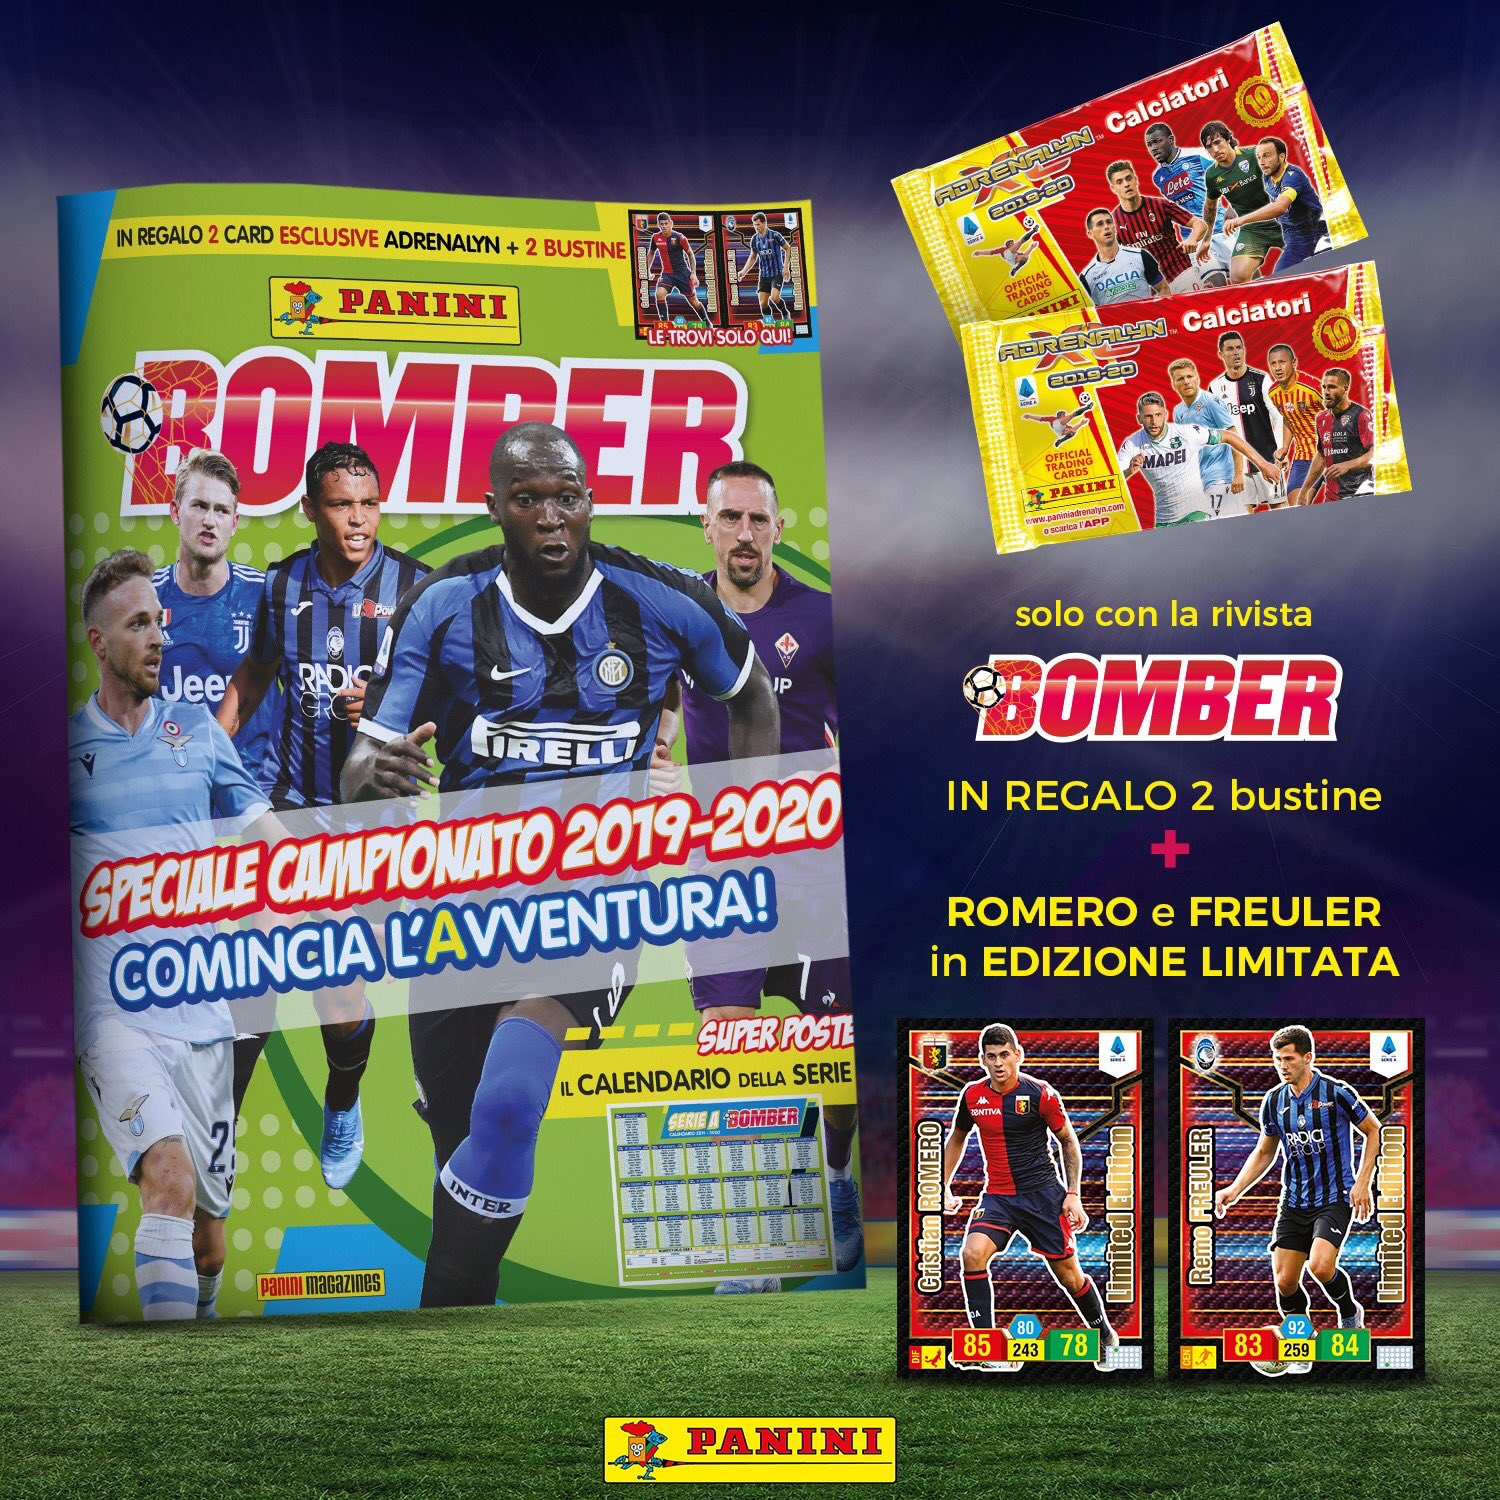 PANINI ADRENALYN XL CALCIATORI 2019-20 ANNONCE TWITTER BOMBER SEPTEMBRE 2019